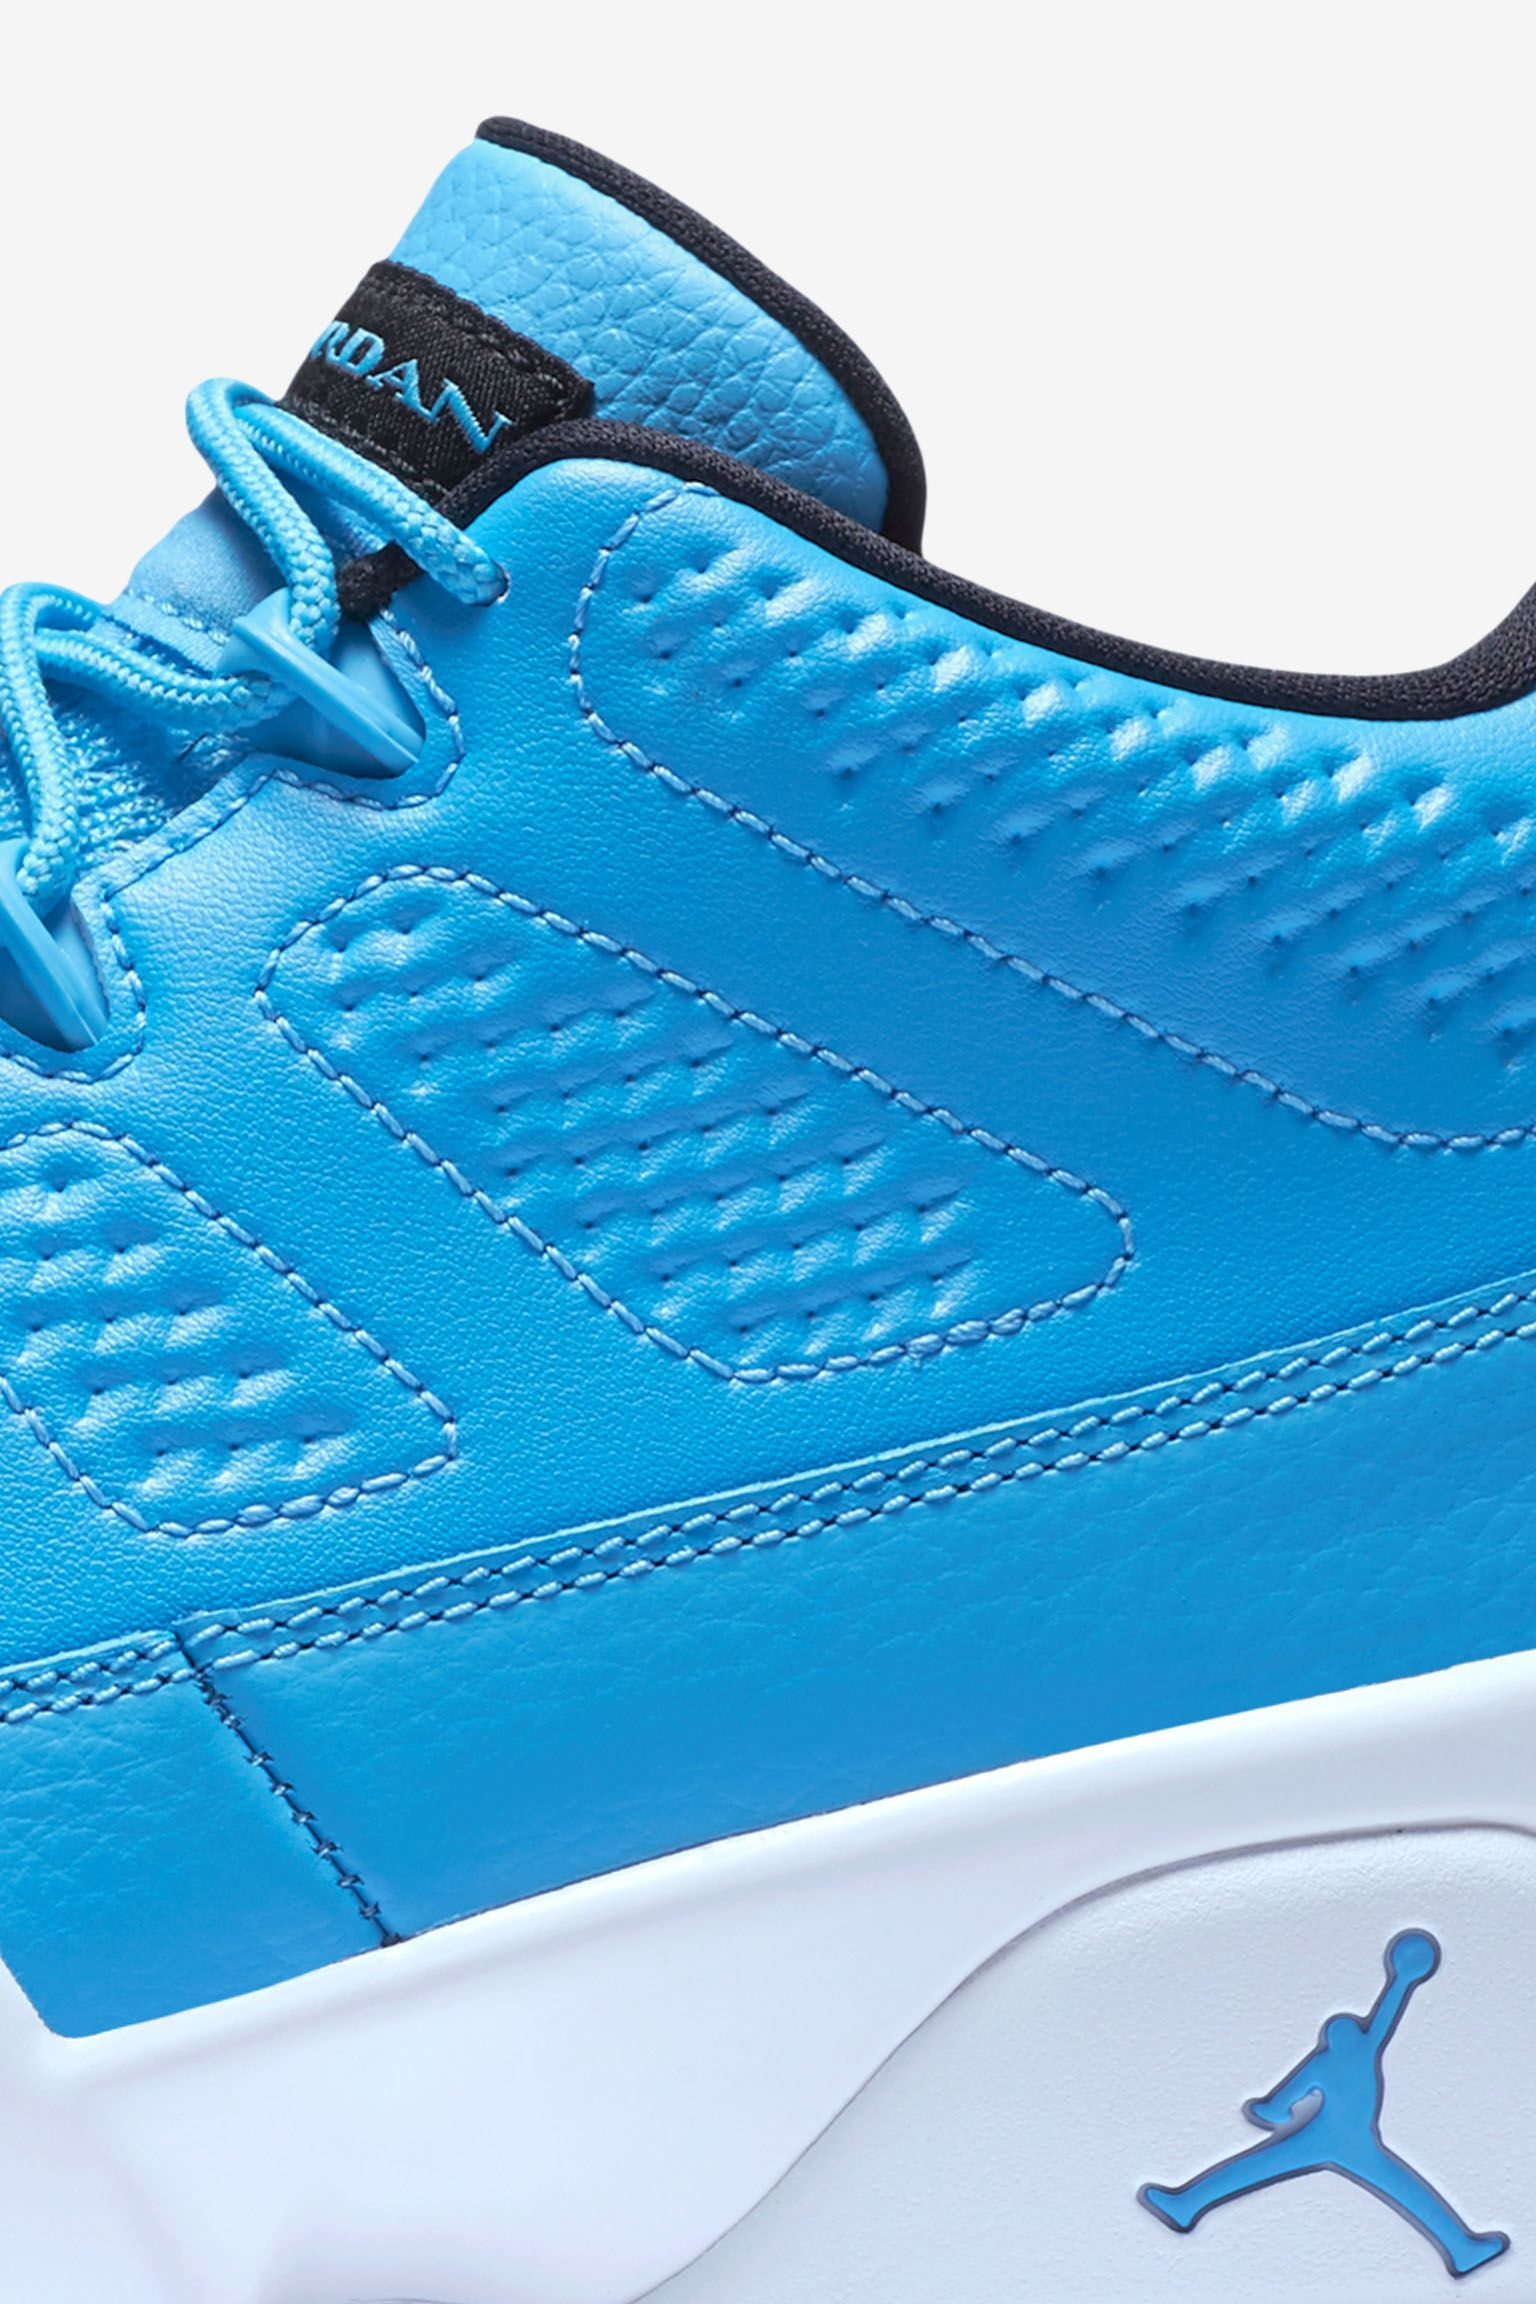 Air Jordan 9 Retro Low 'Pantone' Release Date